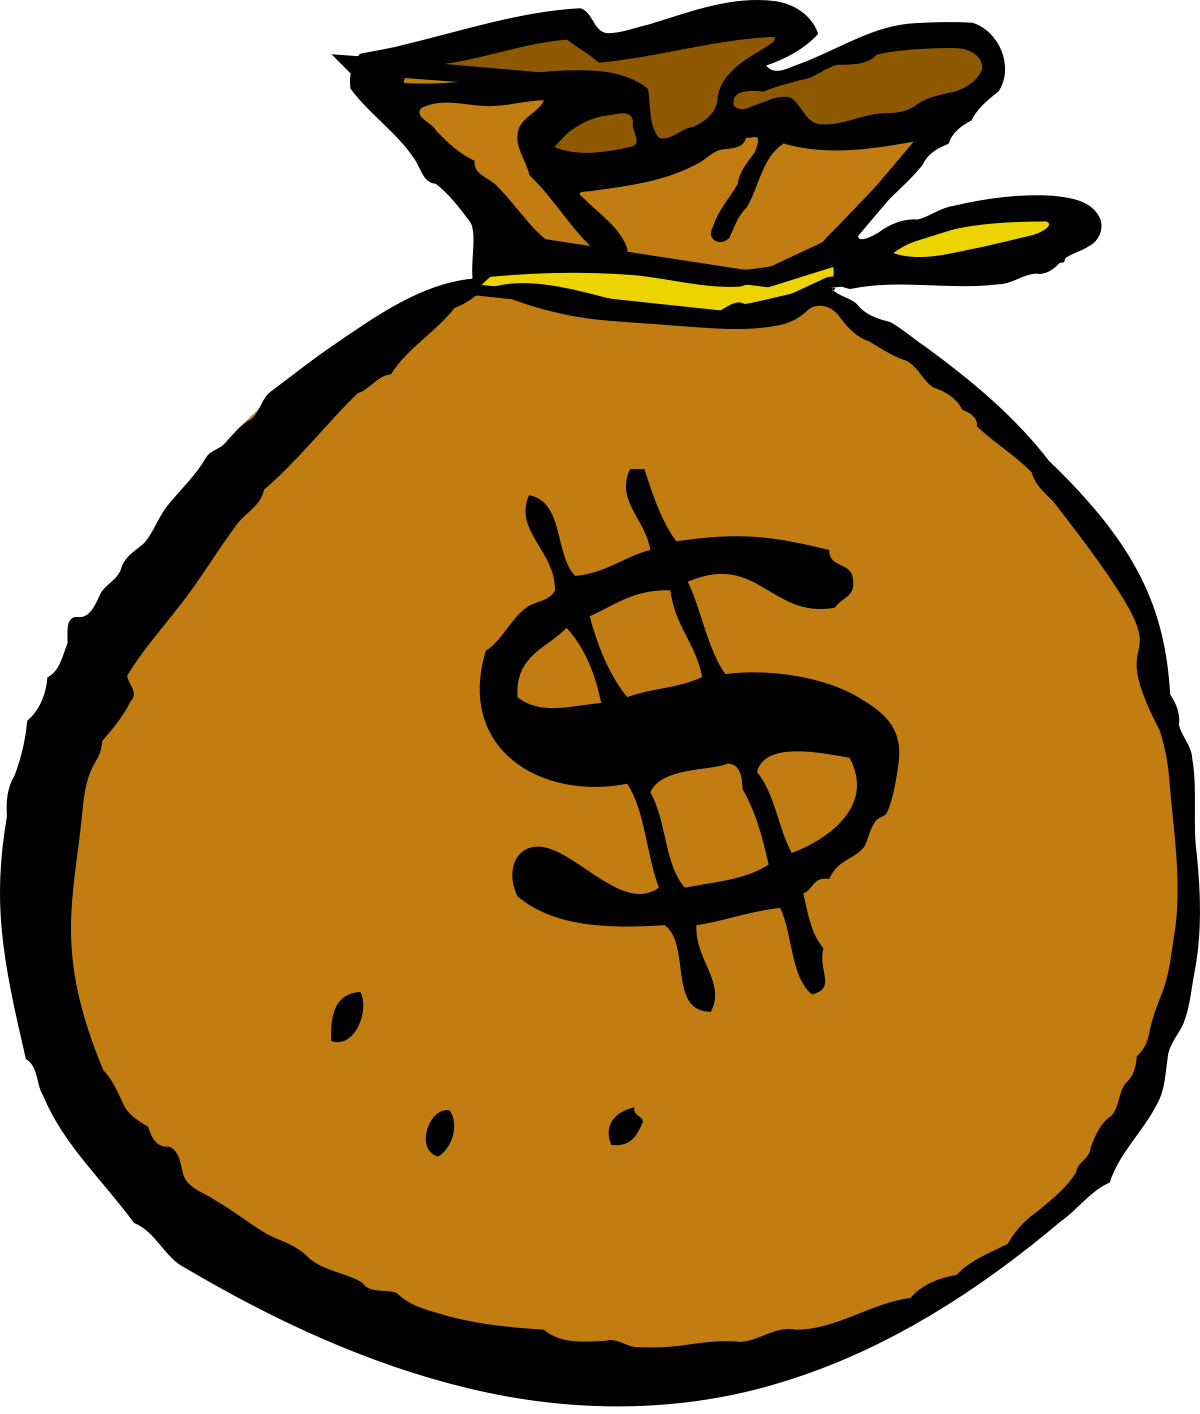 Bag images group wiktionary. Money clipart purse